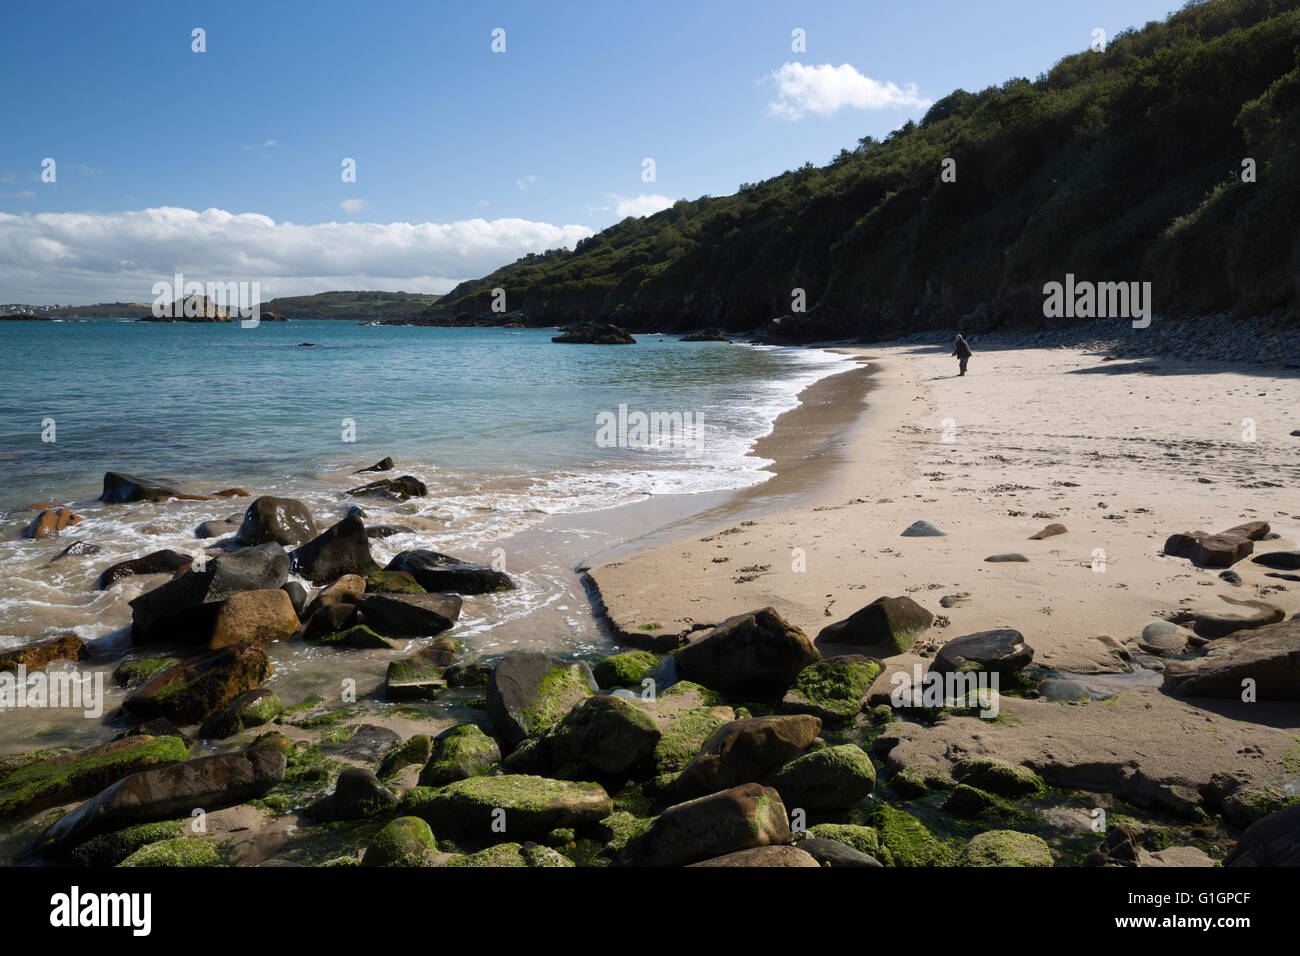 Beg An Fry beach, Locquirec, Finistere, Brittany, France, Europe - Stock Image